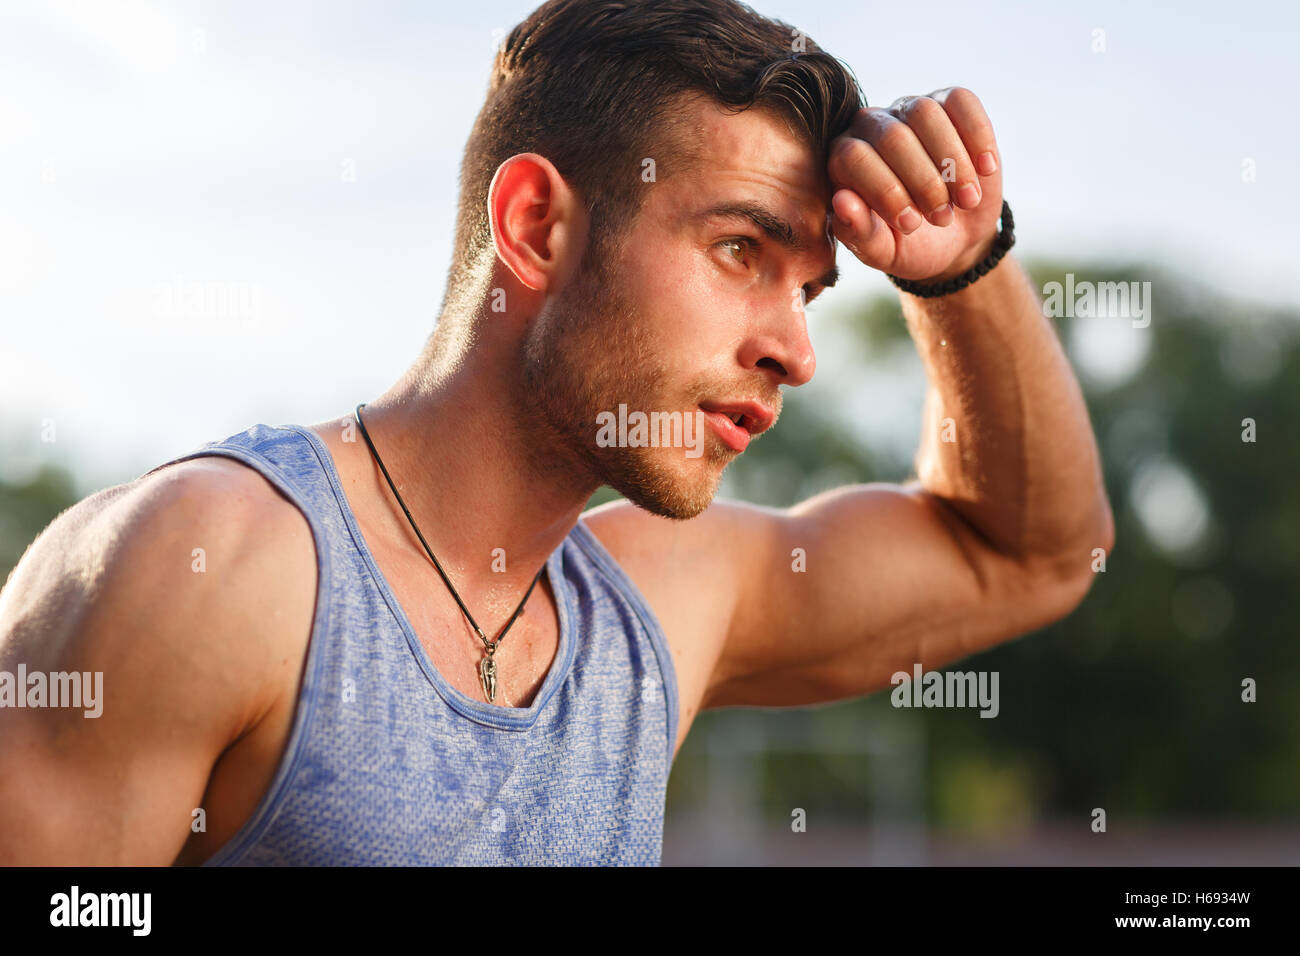 Young muscular sweaty man after workout outside on sunny day - Stock Image